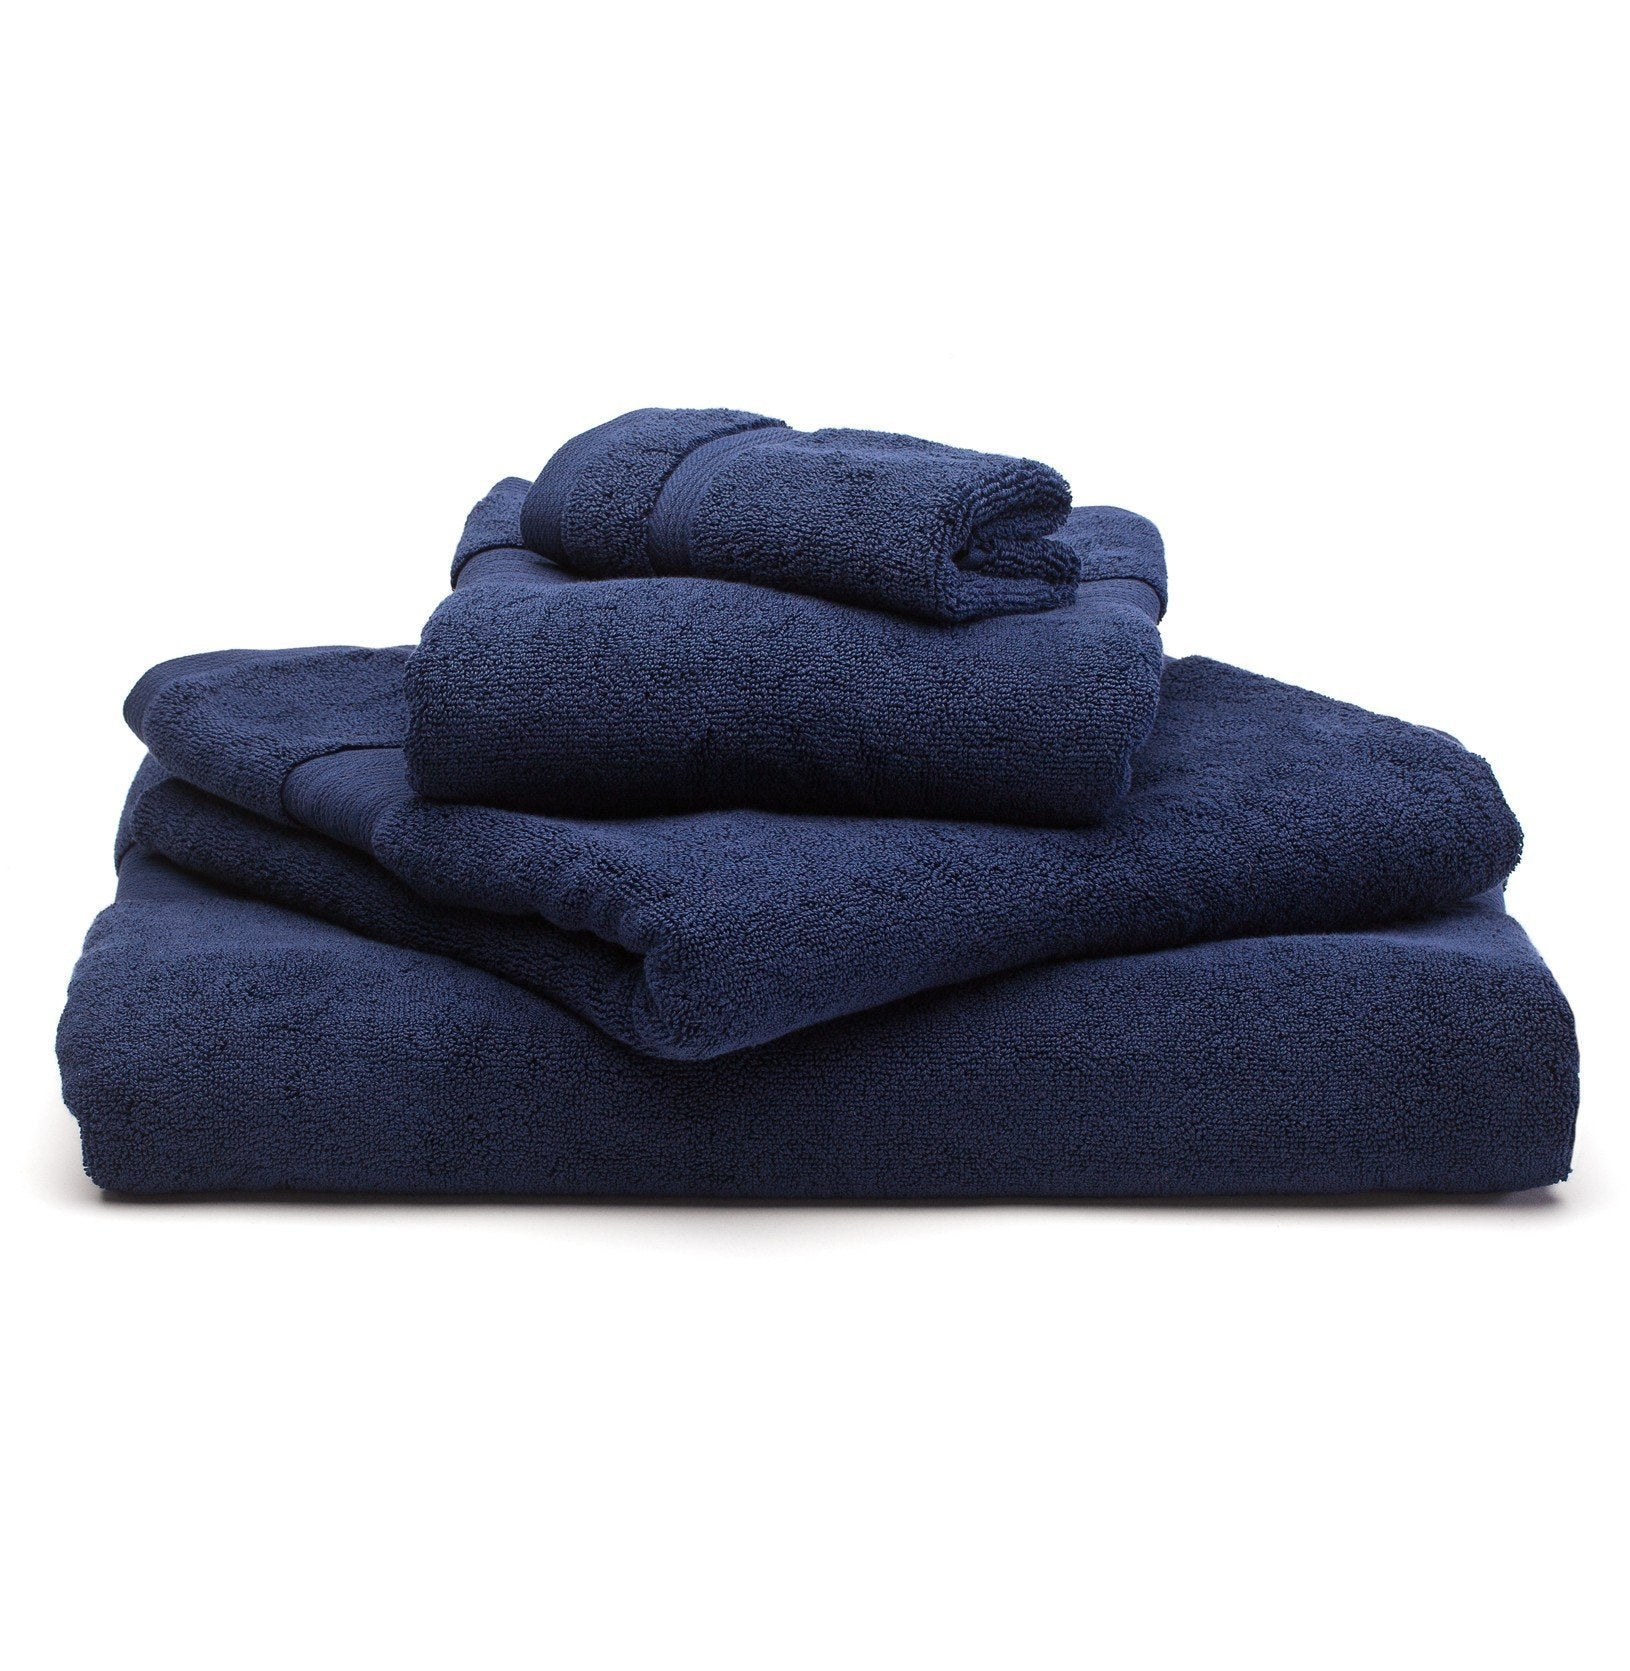 Salema hand towel, dark blue, 100% supima cotton